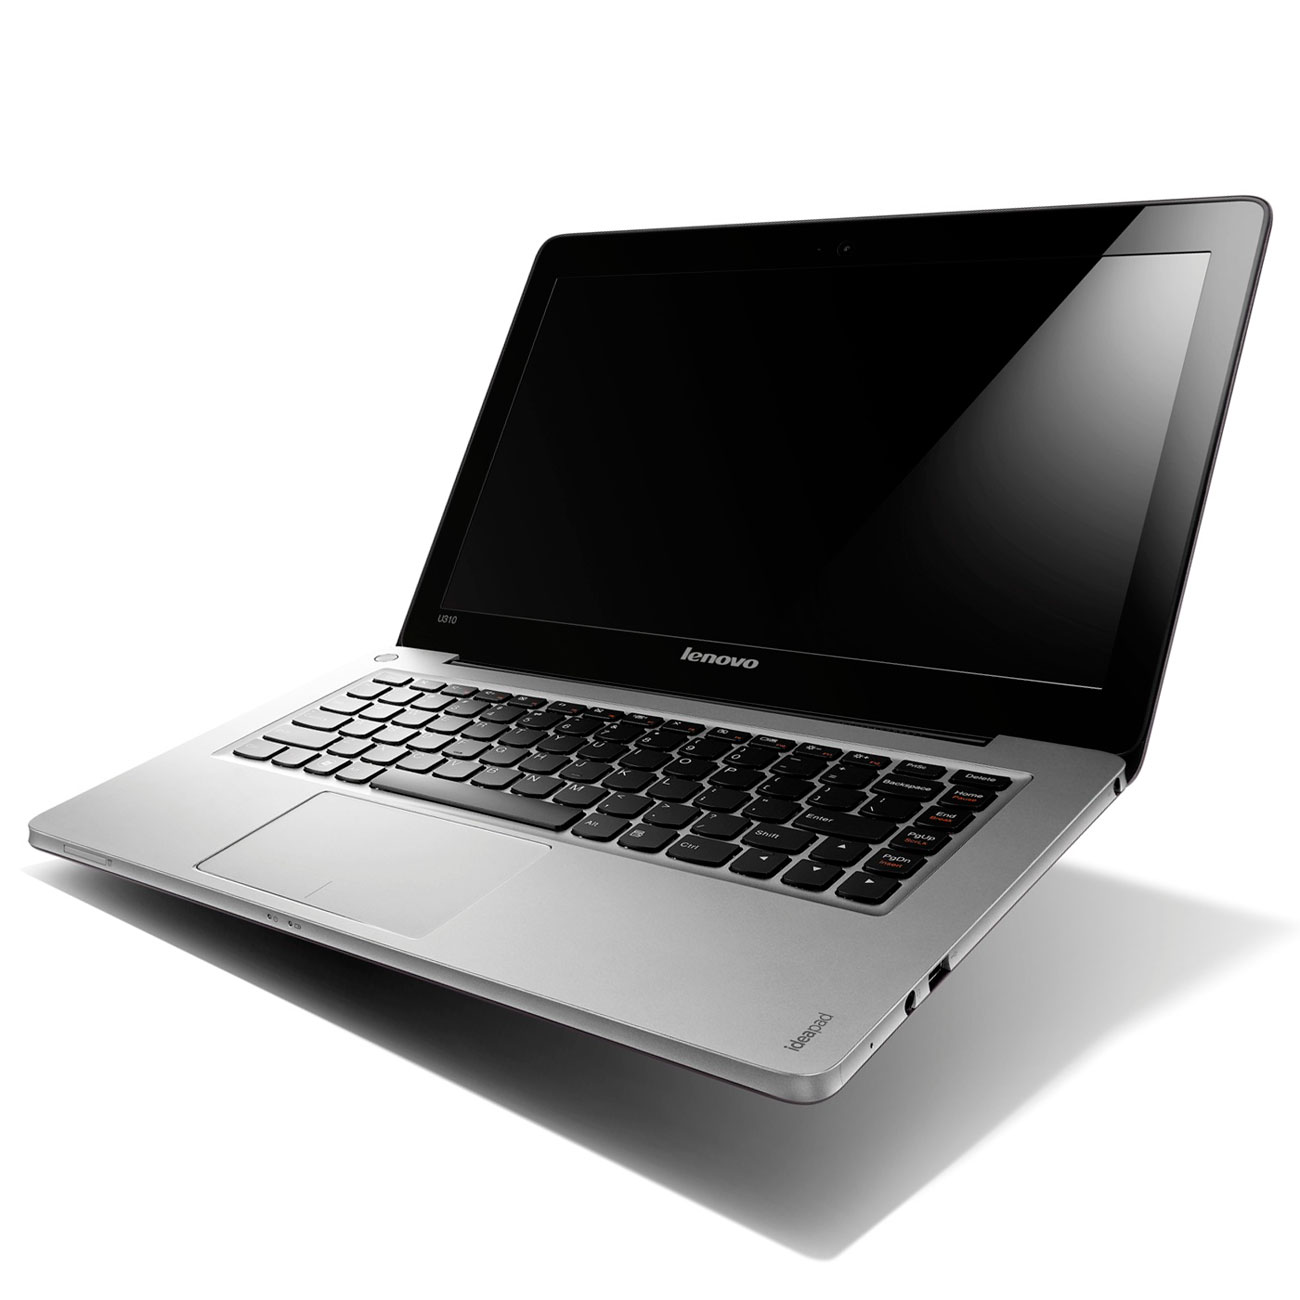 lenovo ideapad u310 touch mb662fr pc portable lenovo. Black Bedroom Furniture Sets. Home Design Ideas